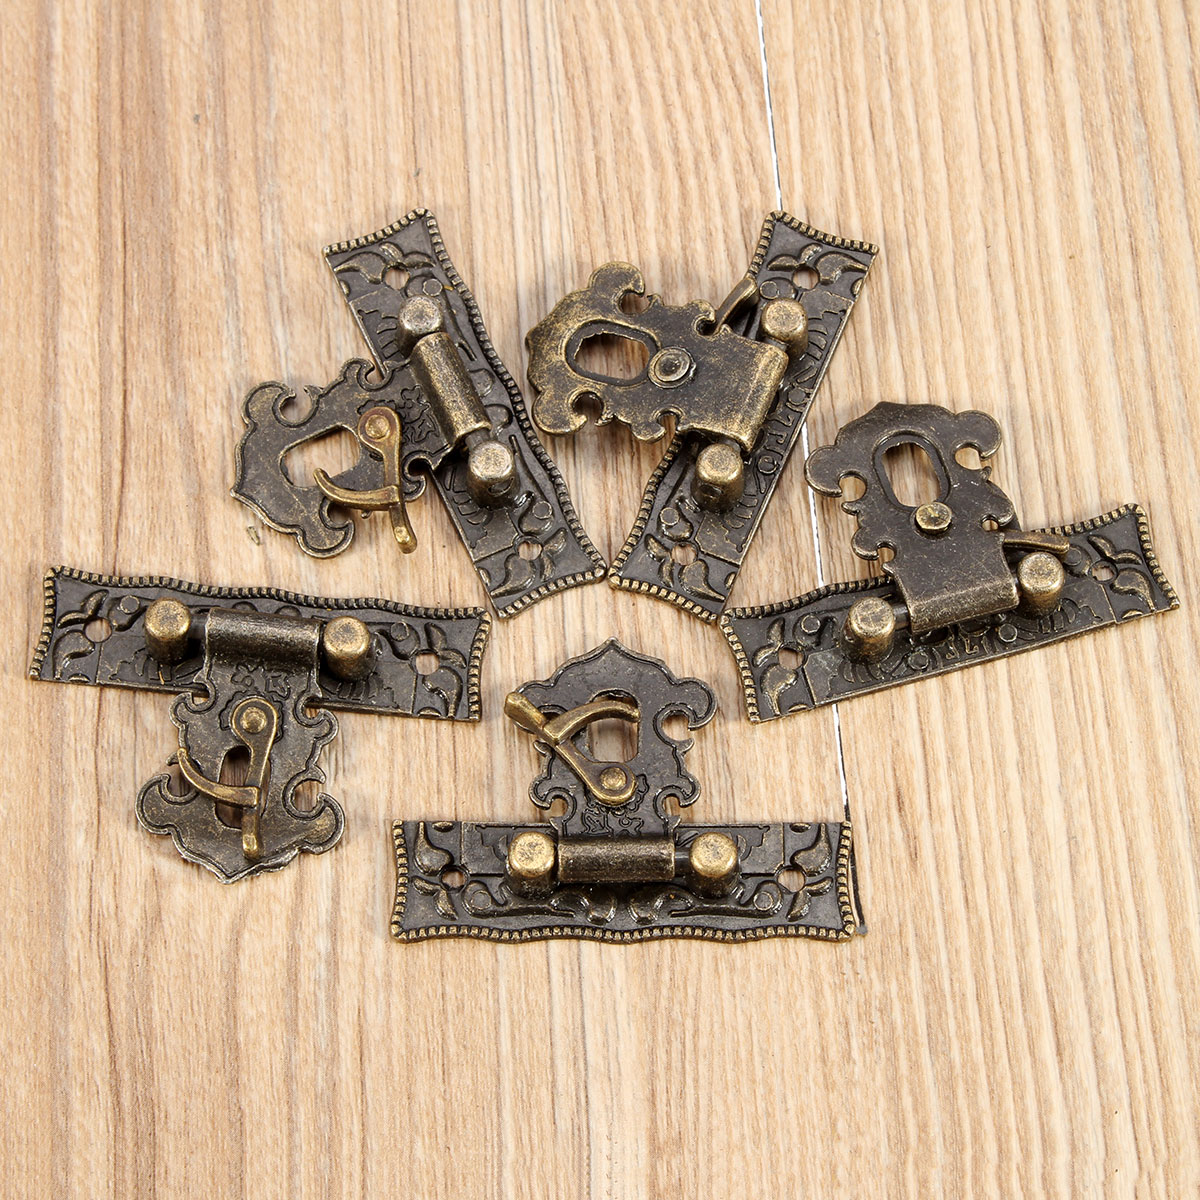 5Sets Bronze Wooden Lock Box Suitcase Toggle Latch Buckles Tone 5.1cm x2.9cm